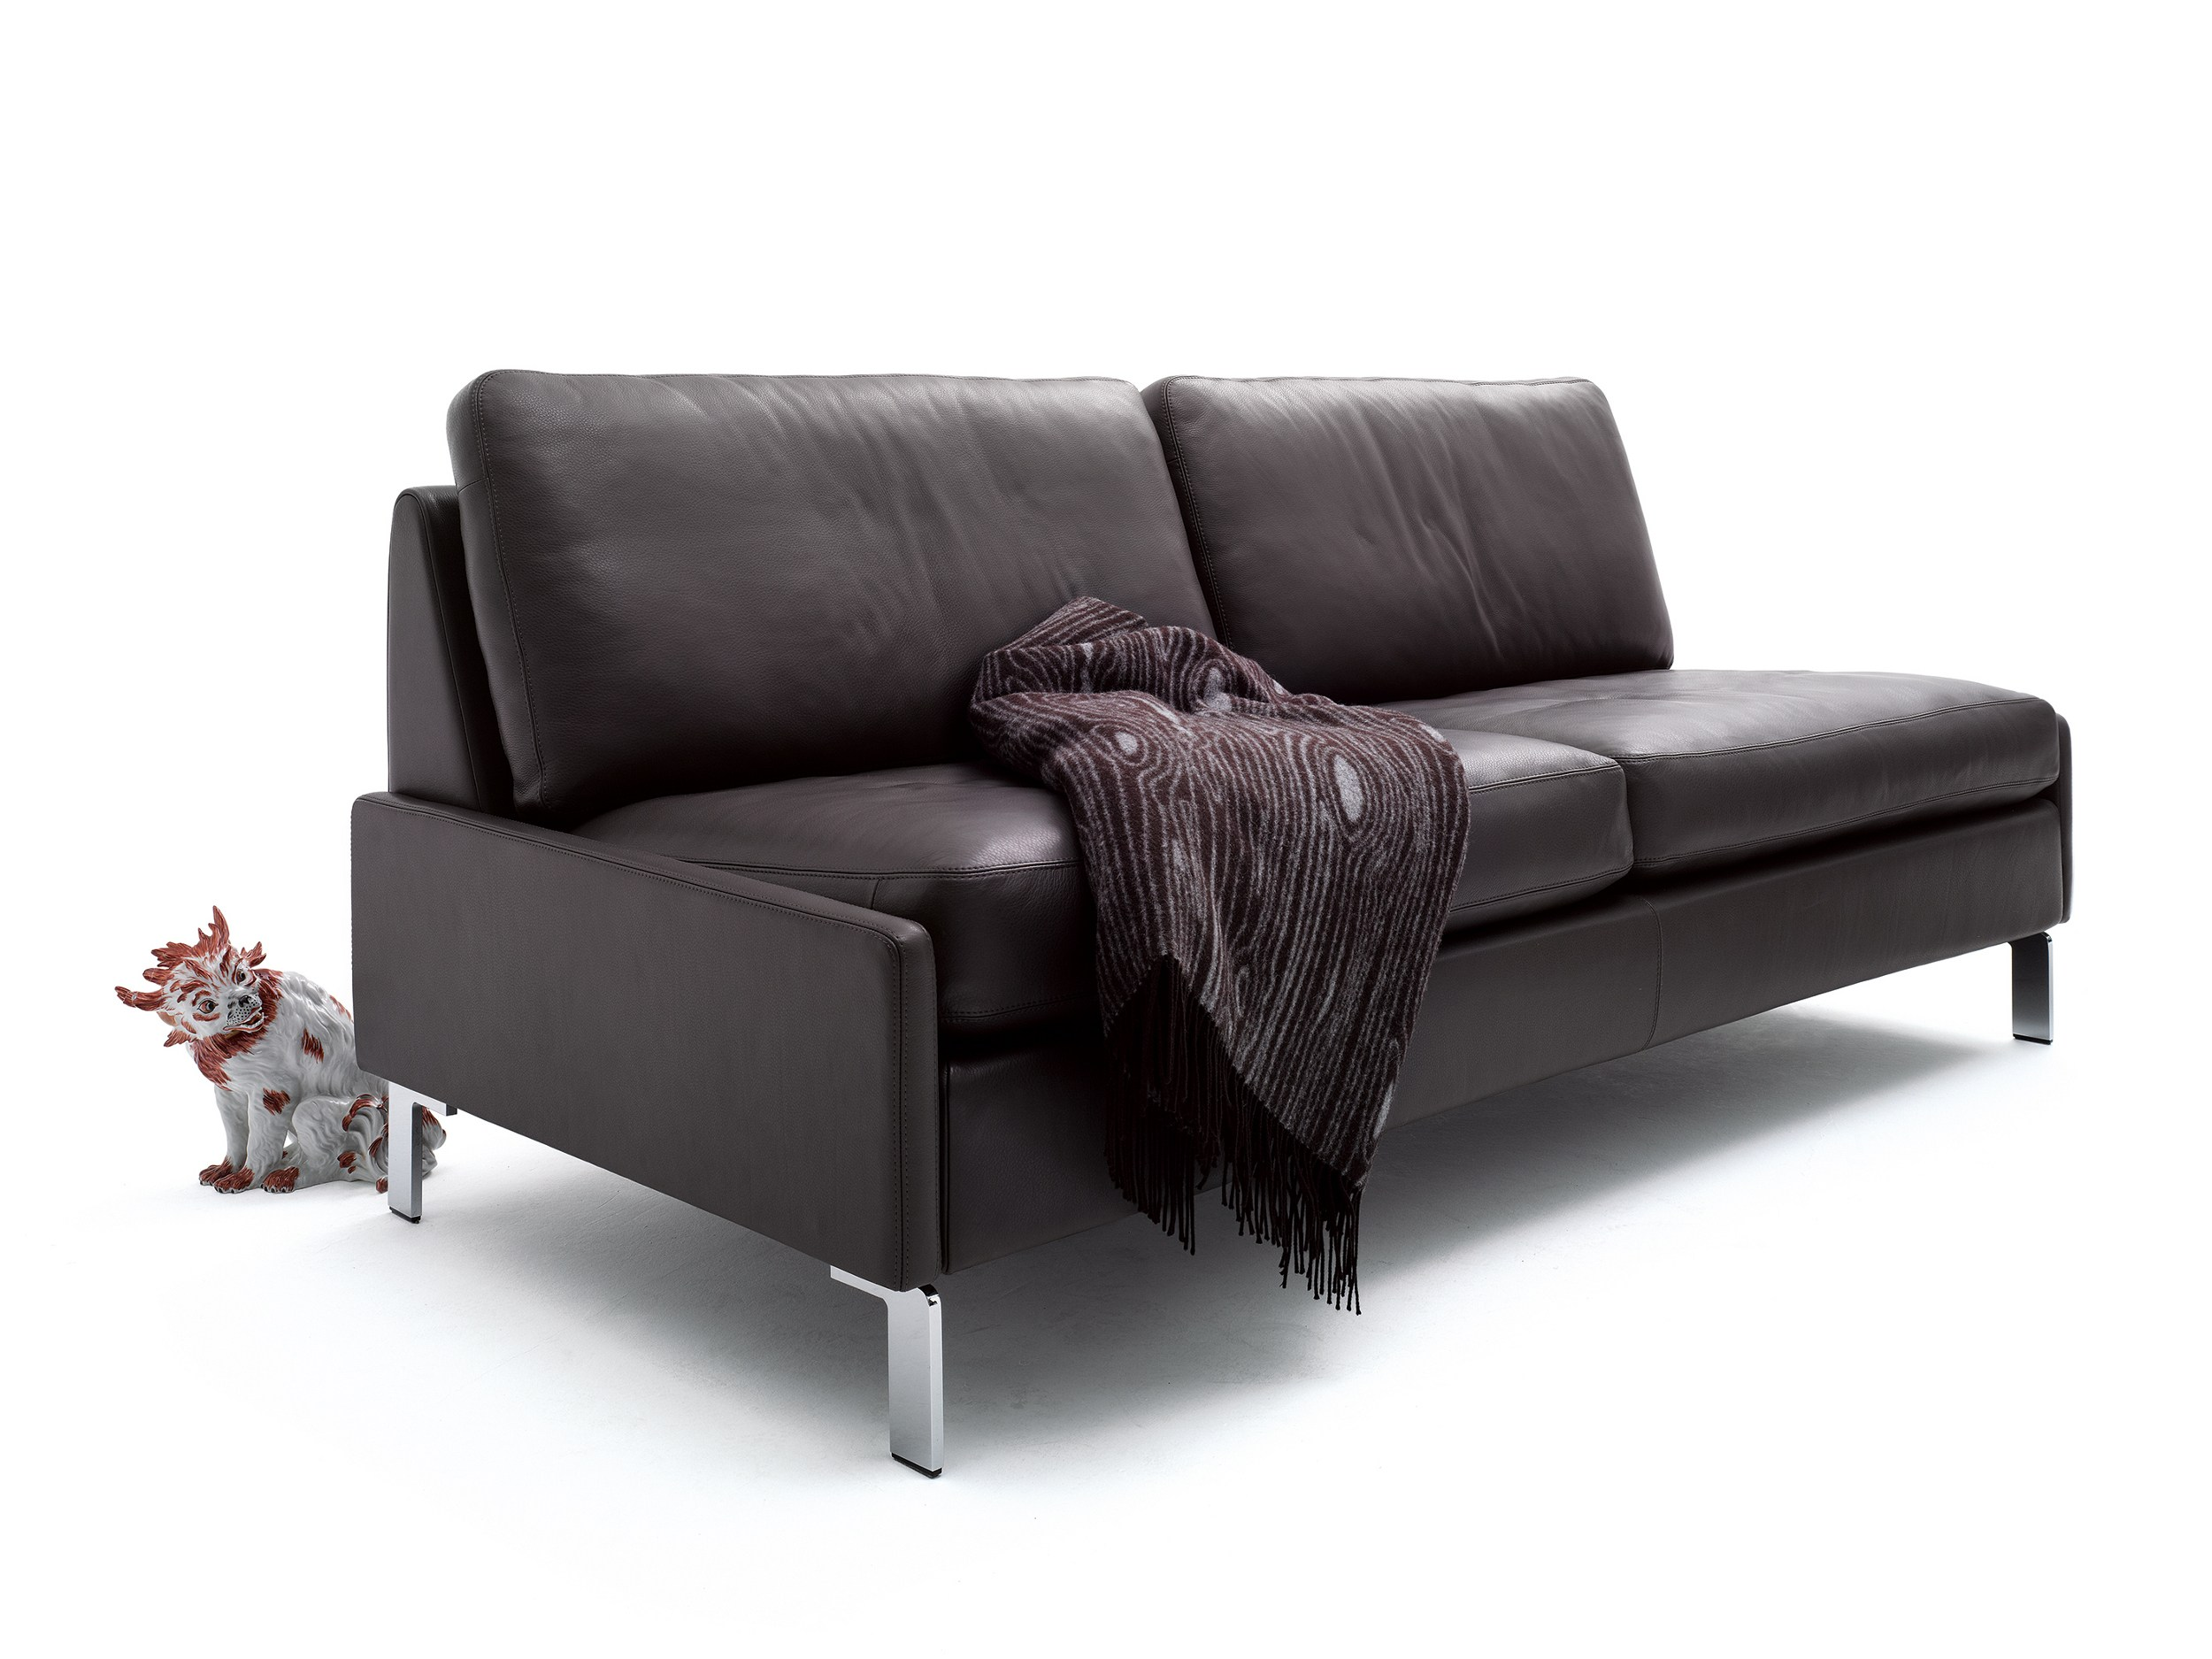 conseta leather sofa by cor sitzm bel helmut l bke design friedrich wilhelm m ller. Black Bedroom Furniture Sets. Home Design Ideas